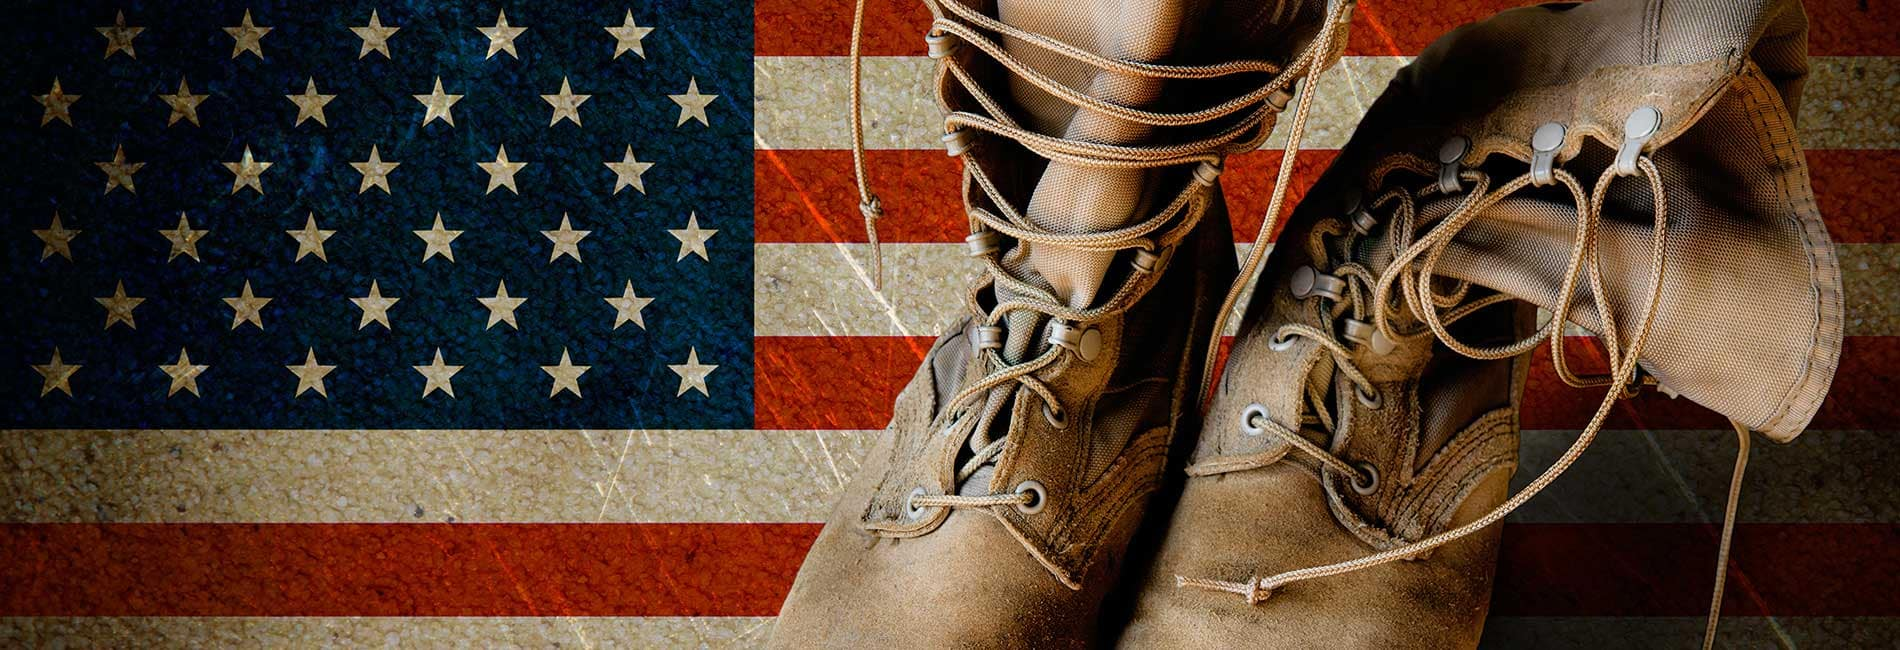 Military boots and flag